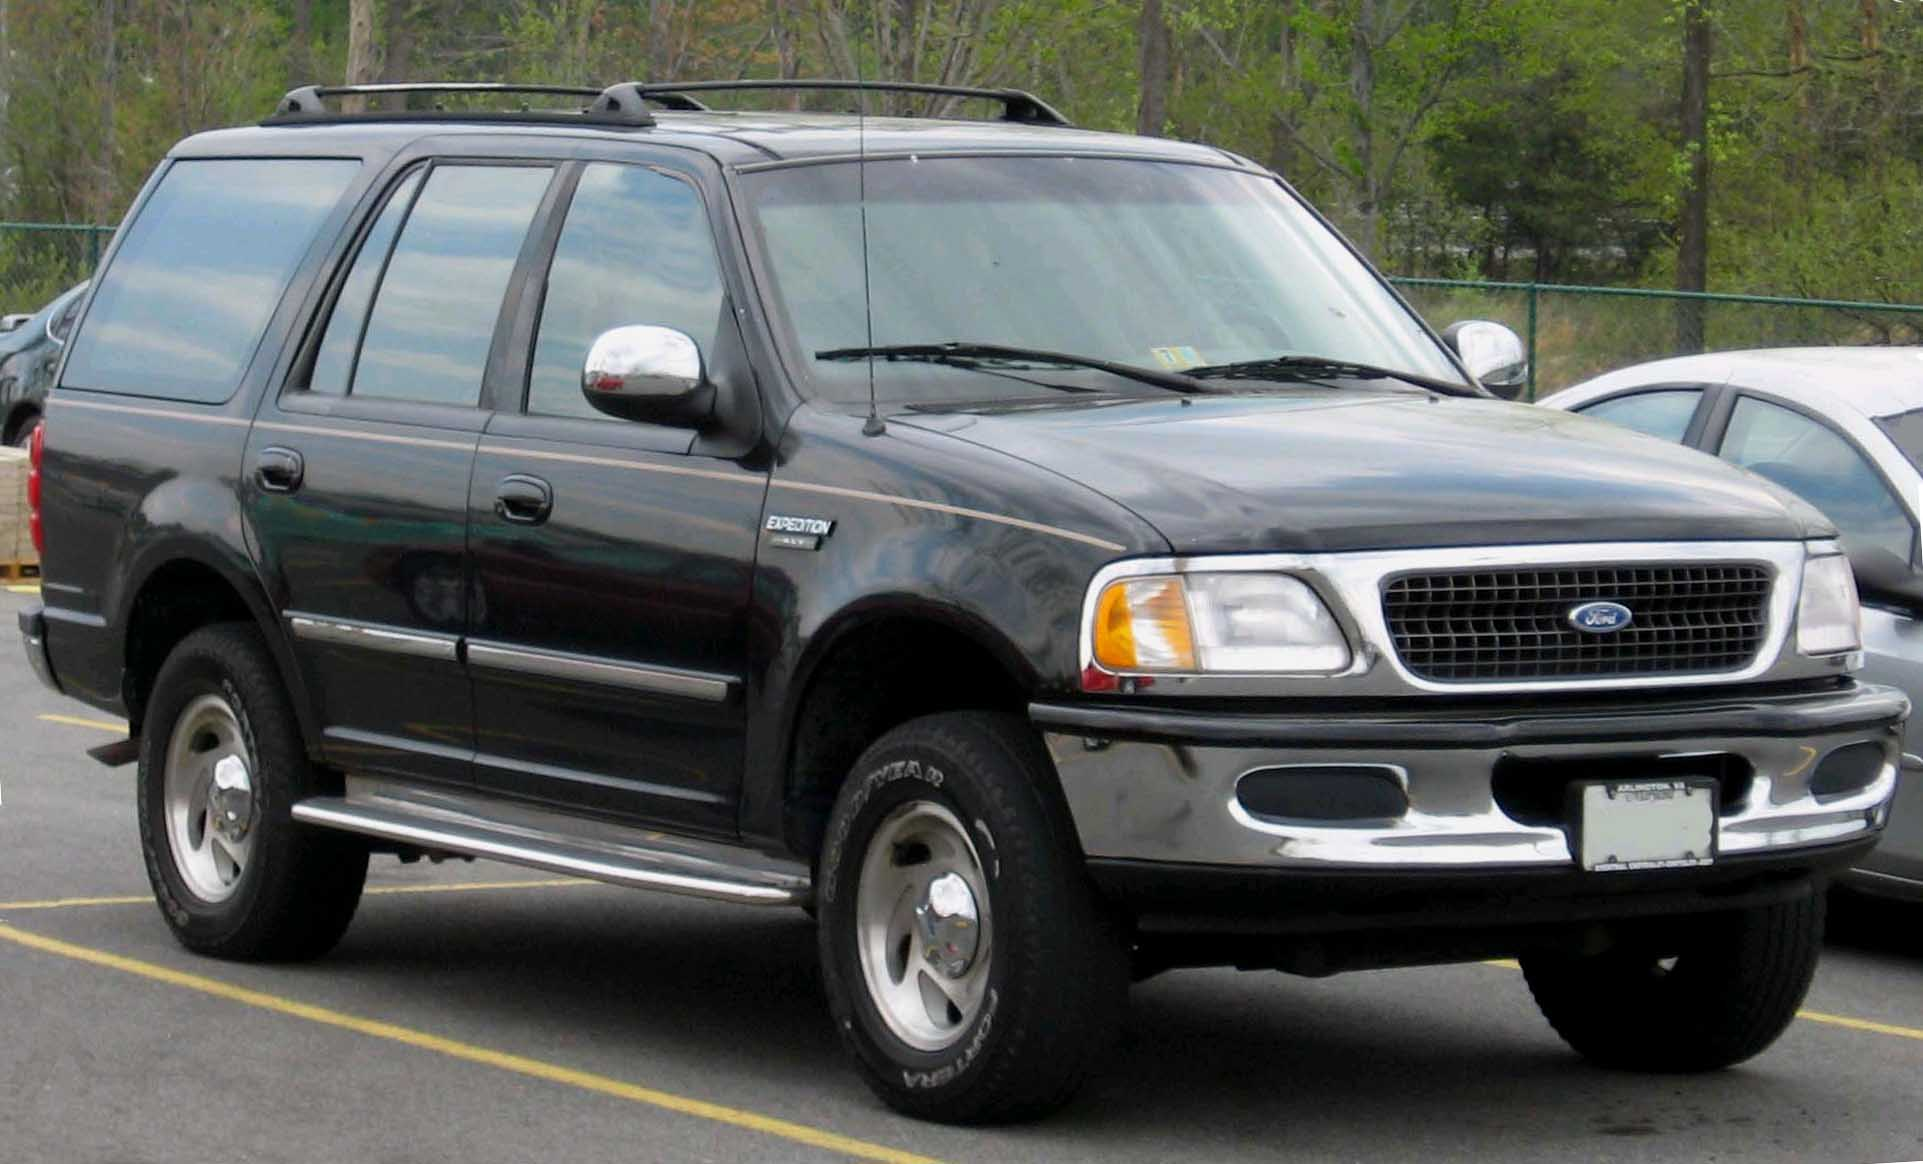 Ford Expedition 2008 foto - 5